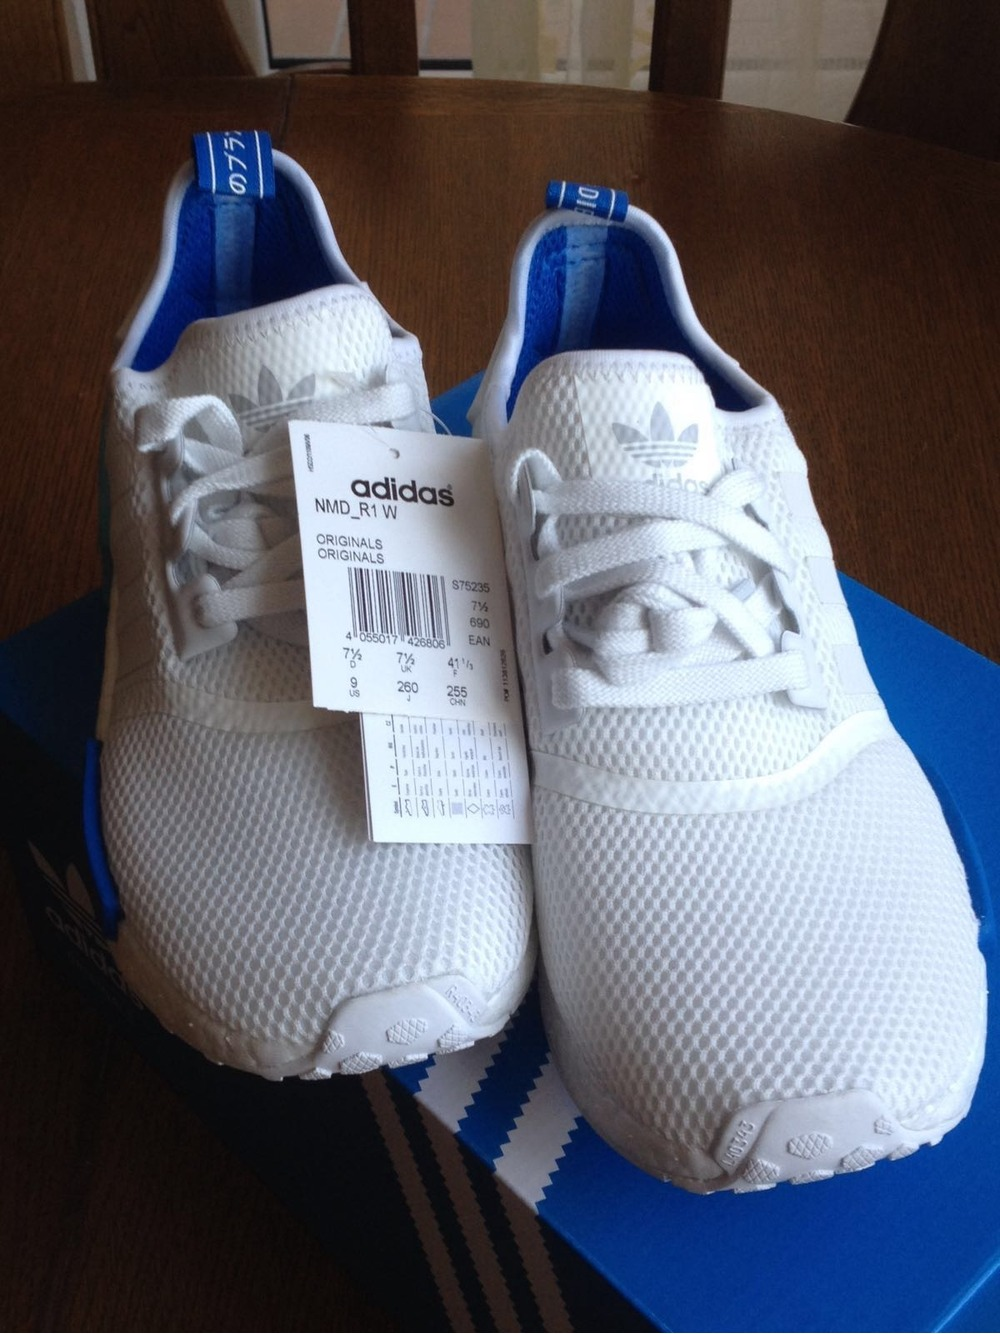 iwzorf Buy cheap - adidas nmd r1 Blue,adidas yeezy boost 350 Pink,shoes sale